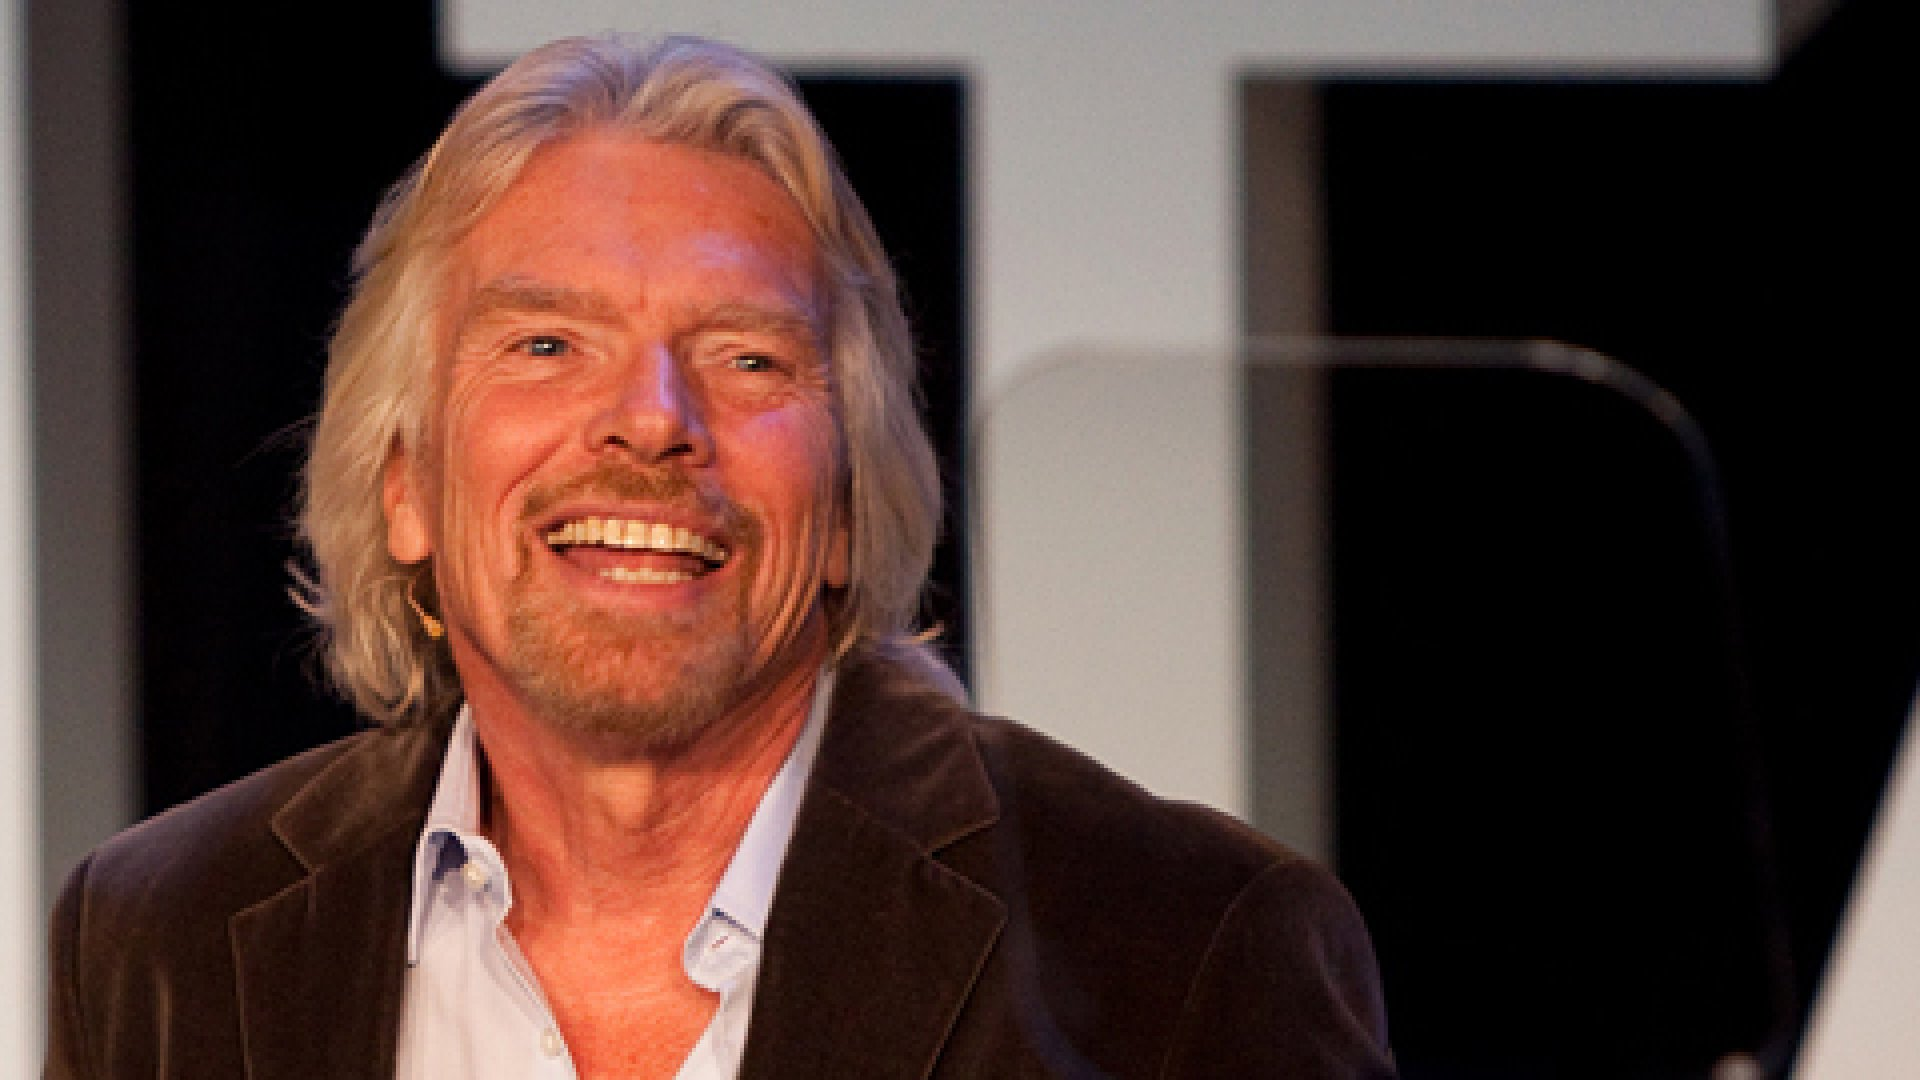 Richard Branson: My Plan to End Occupy Wall Street